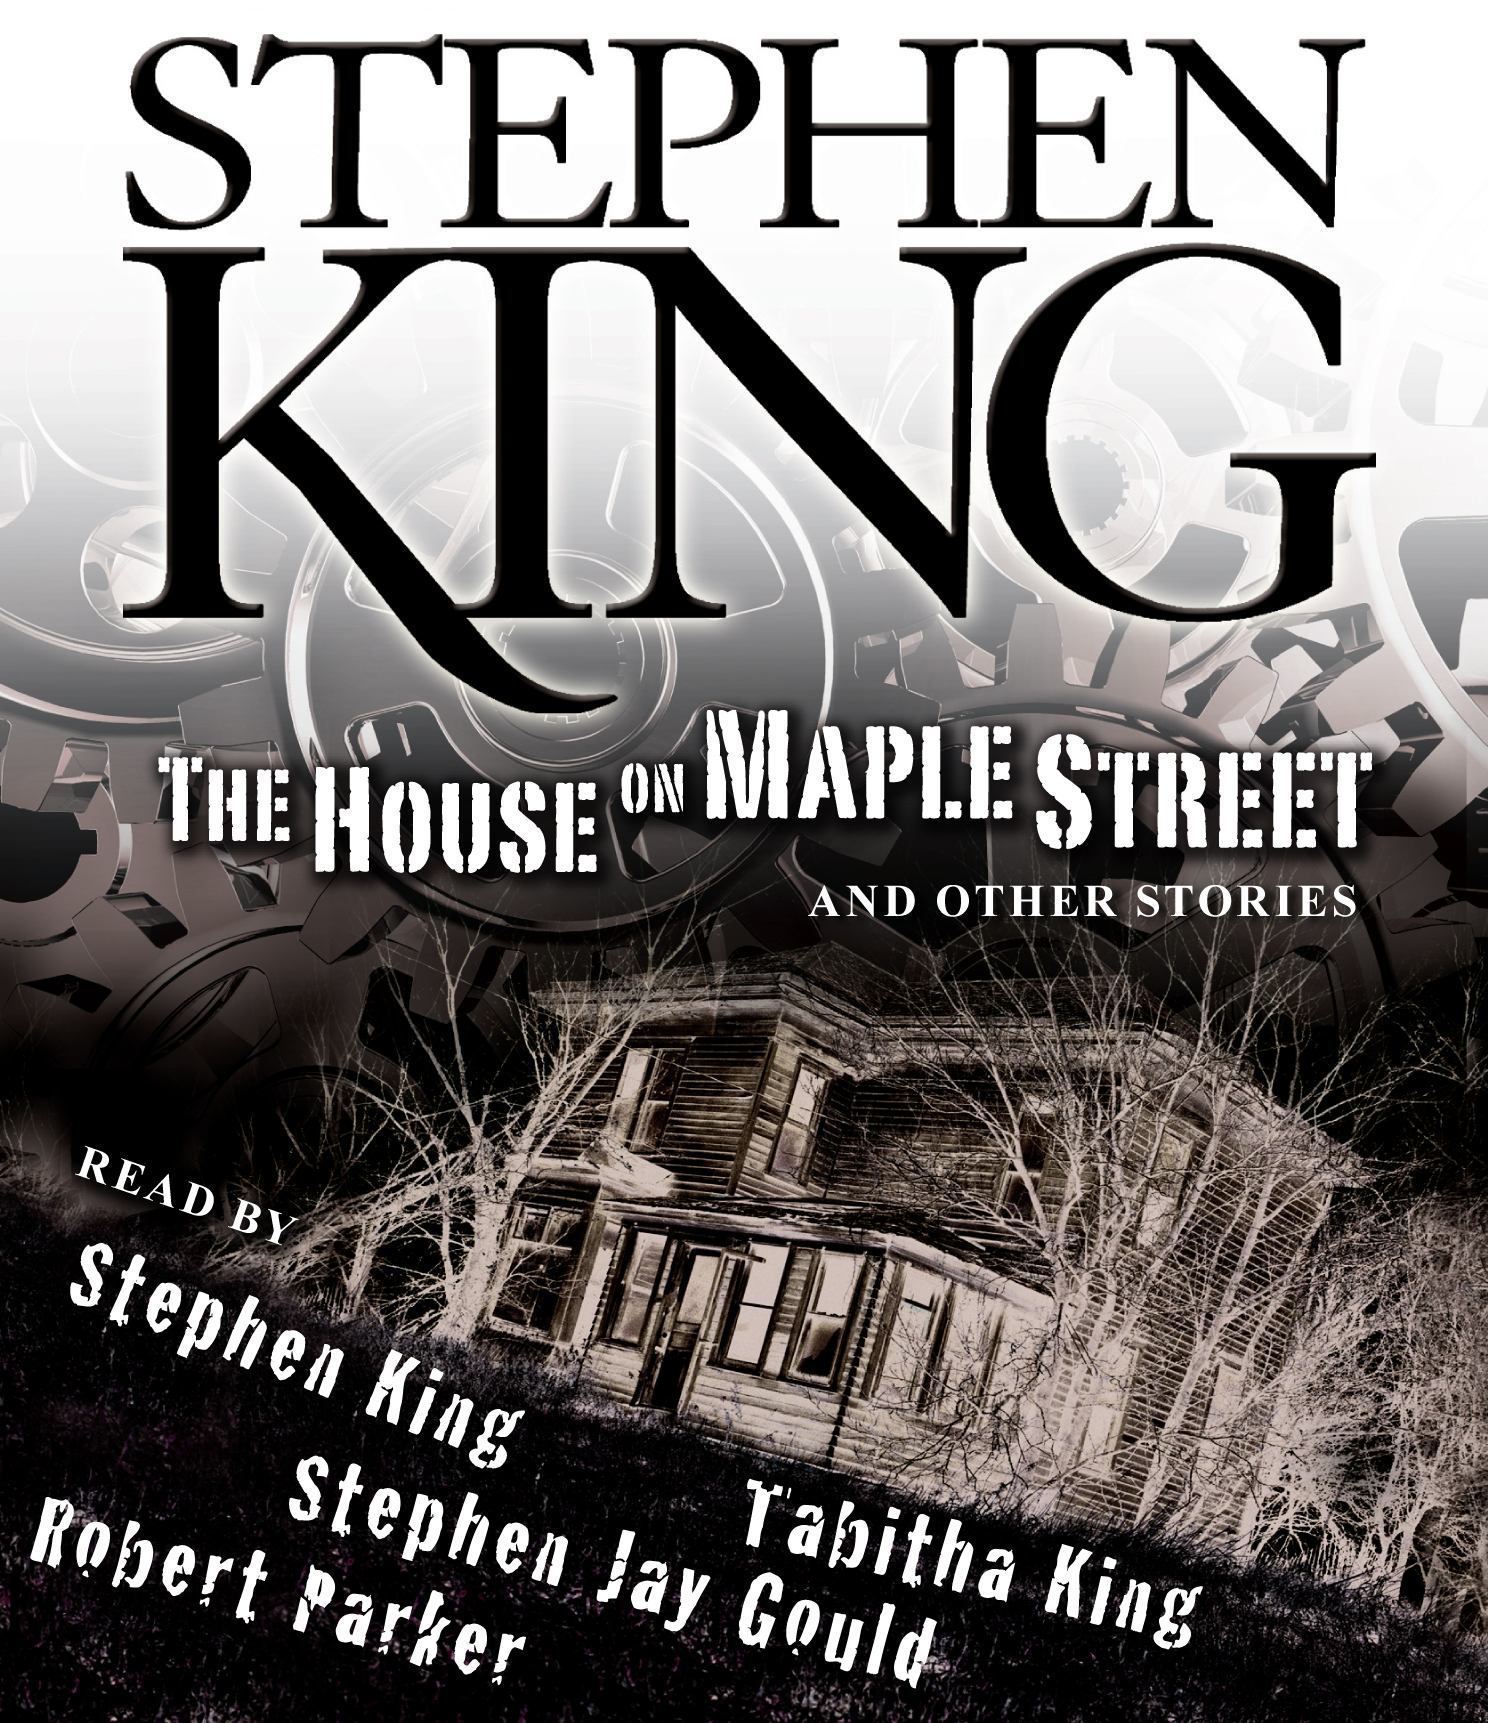 The House on Maple Street Audiobook on CD by Stephen King